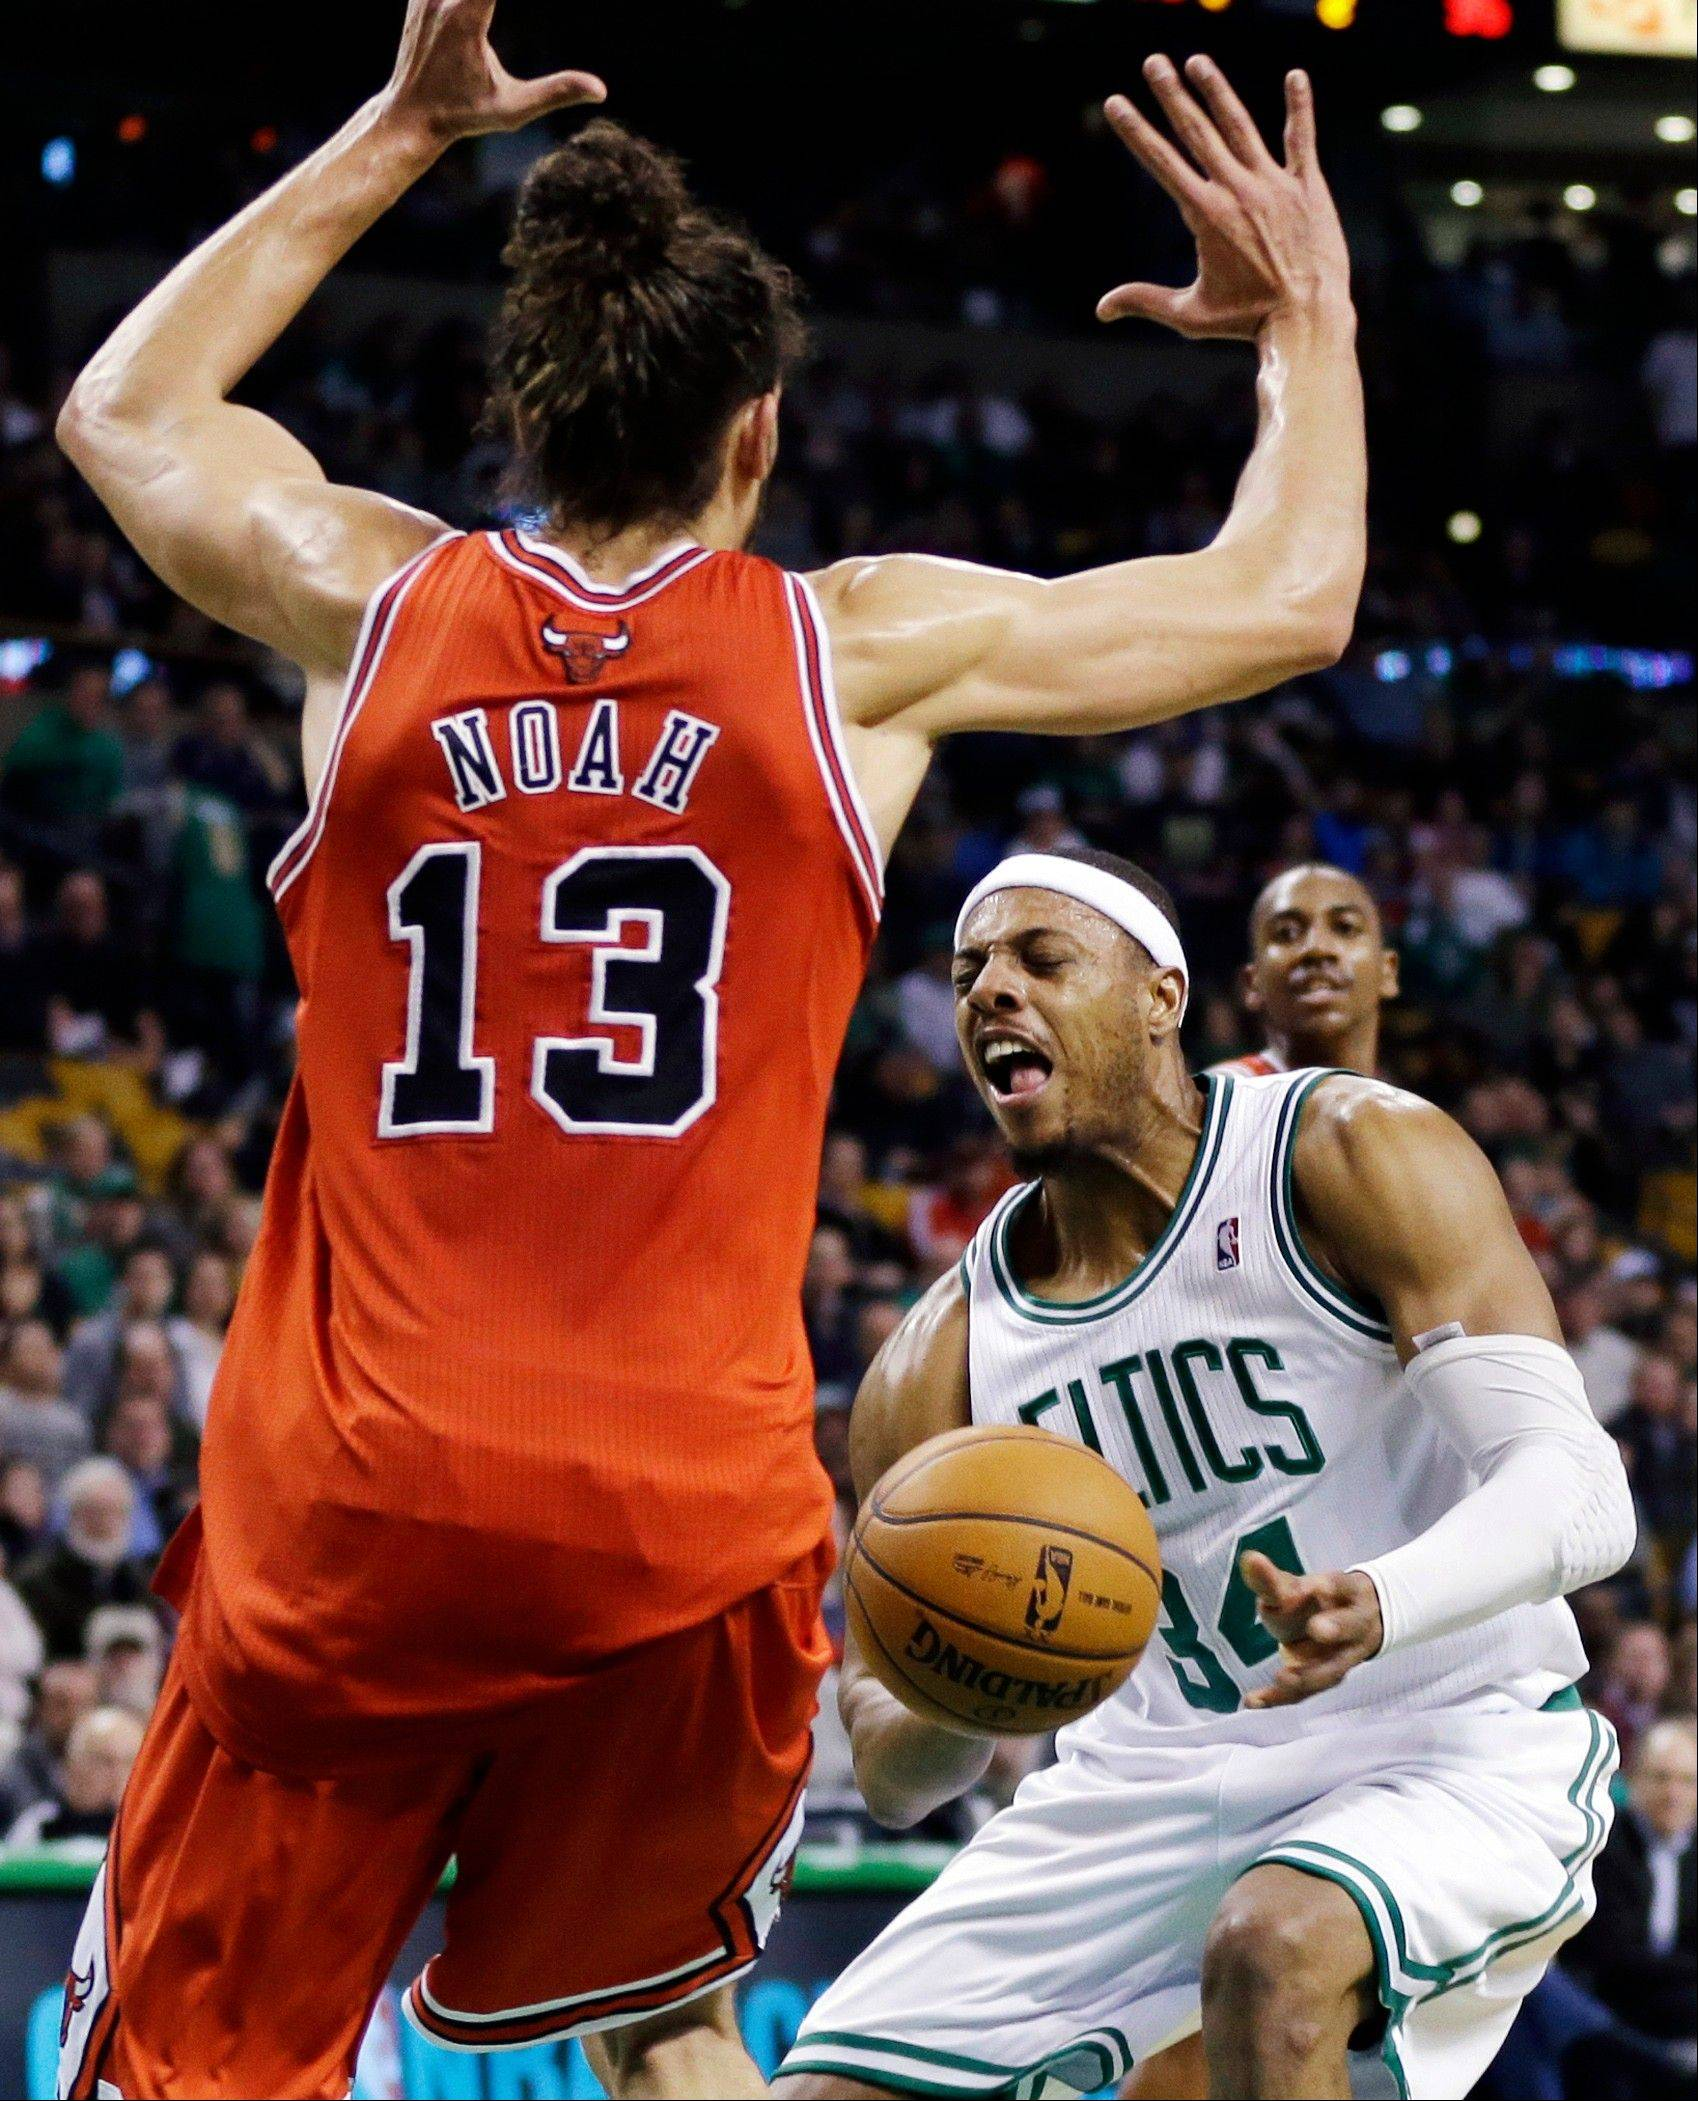 Bulls center Joakim Noah, who played 43 minutes on a sore right foot, defends against the Celtics' Paul Pierce on Wednesday night.